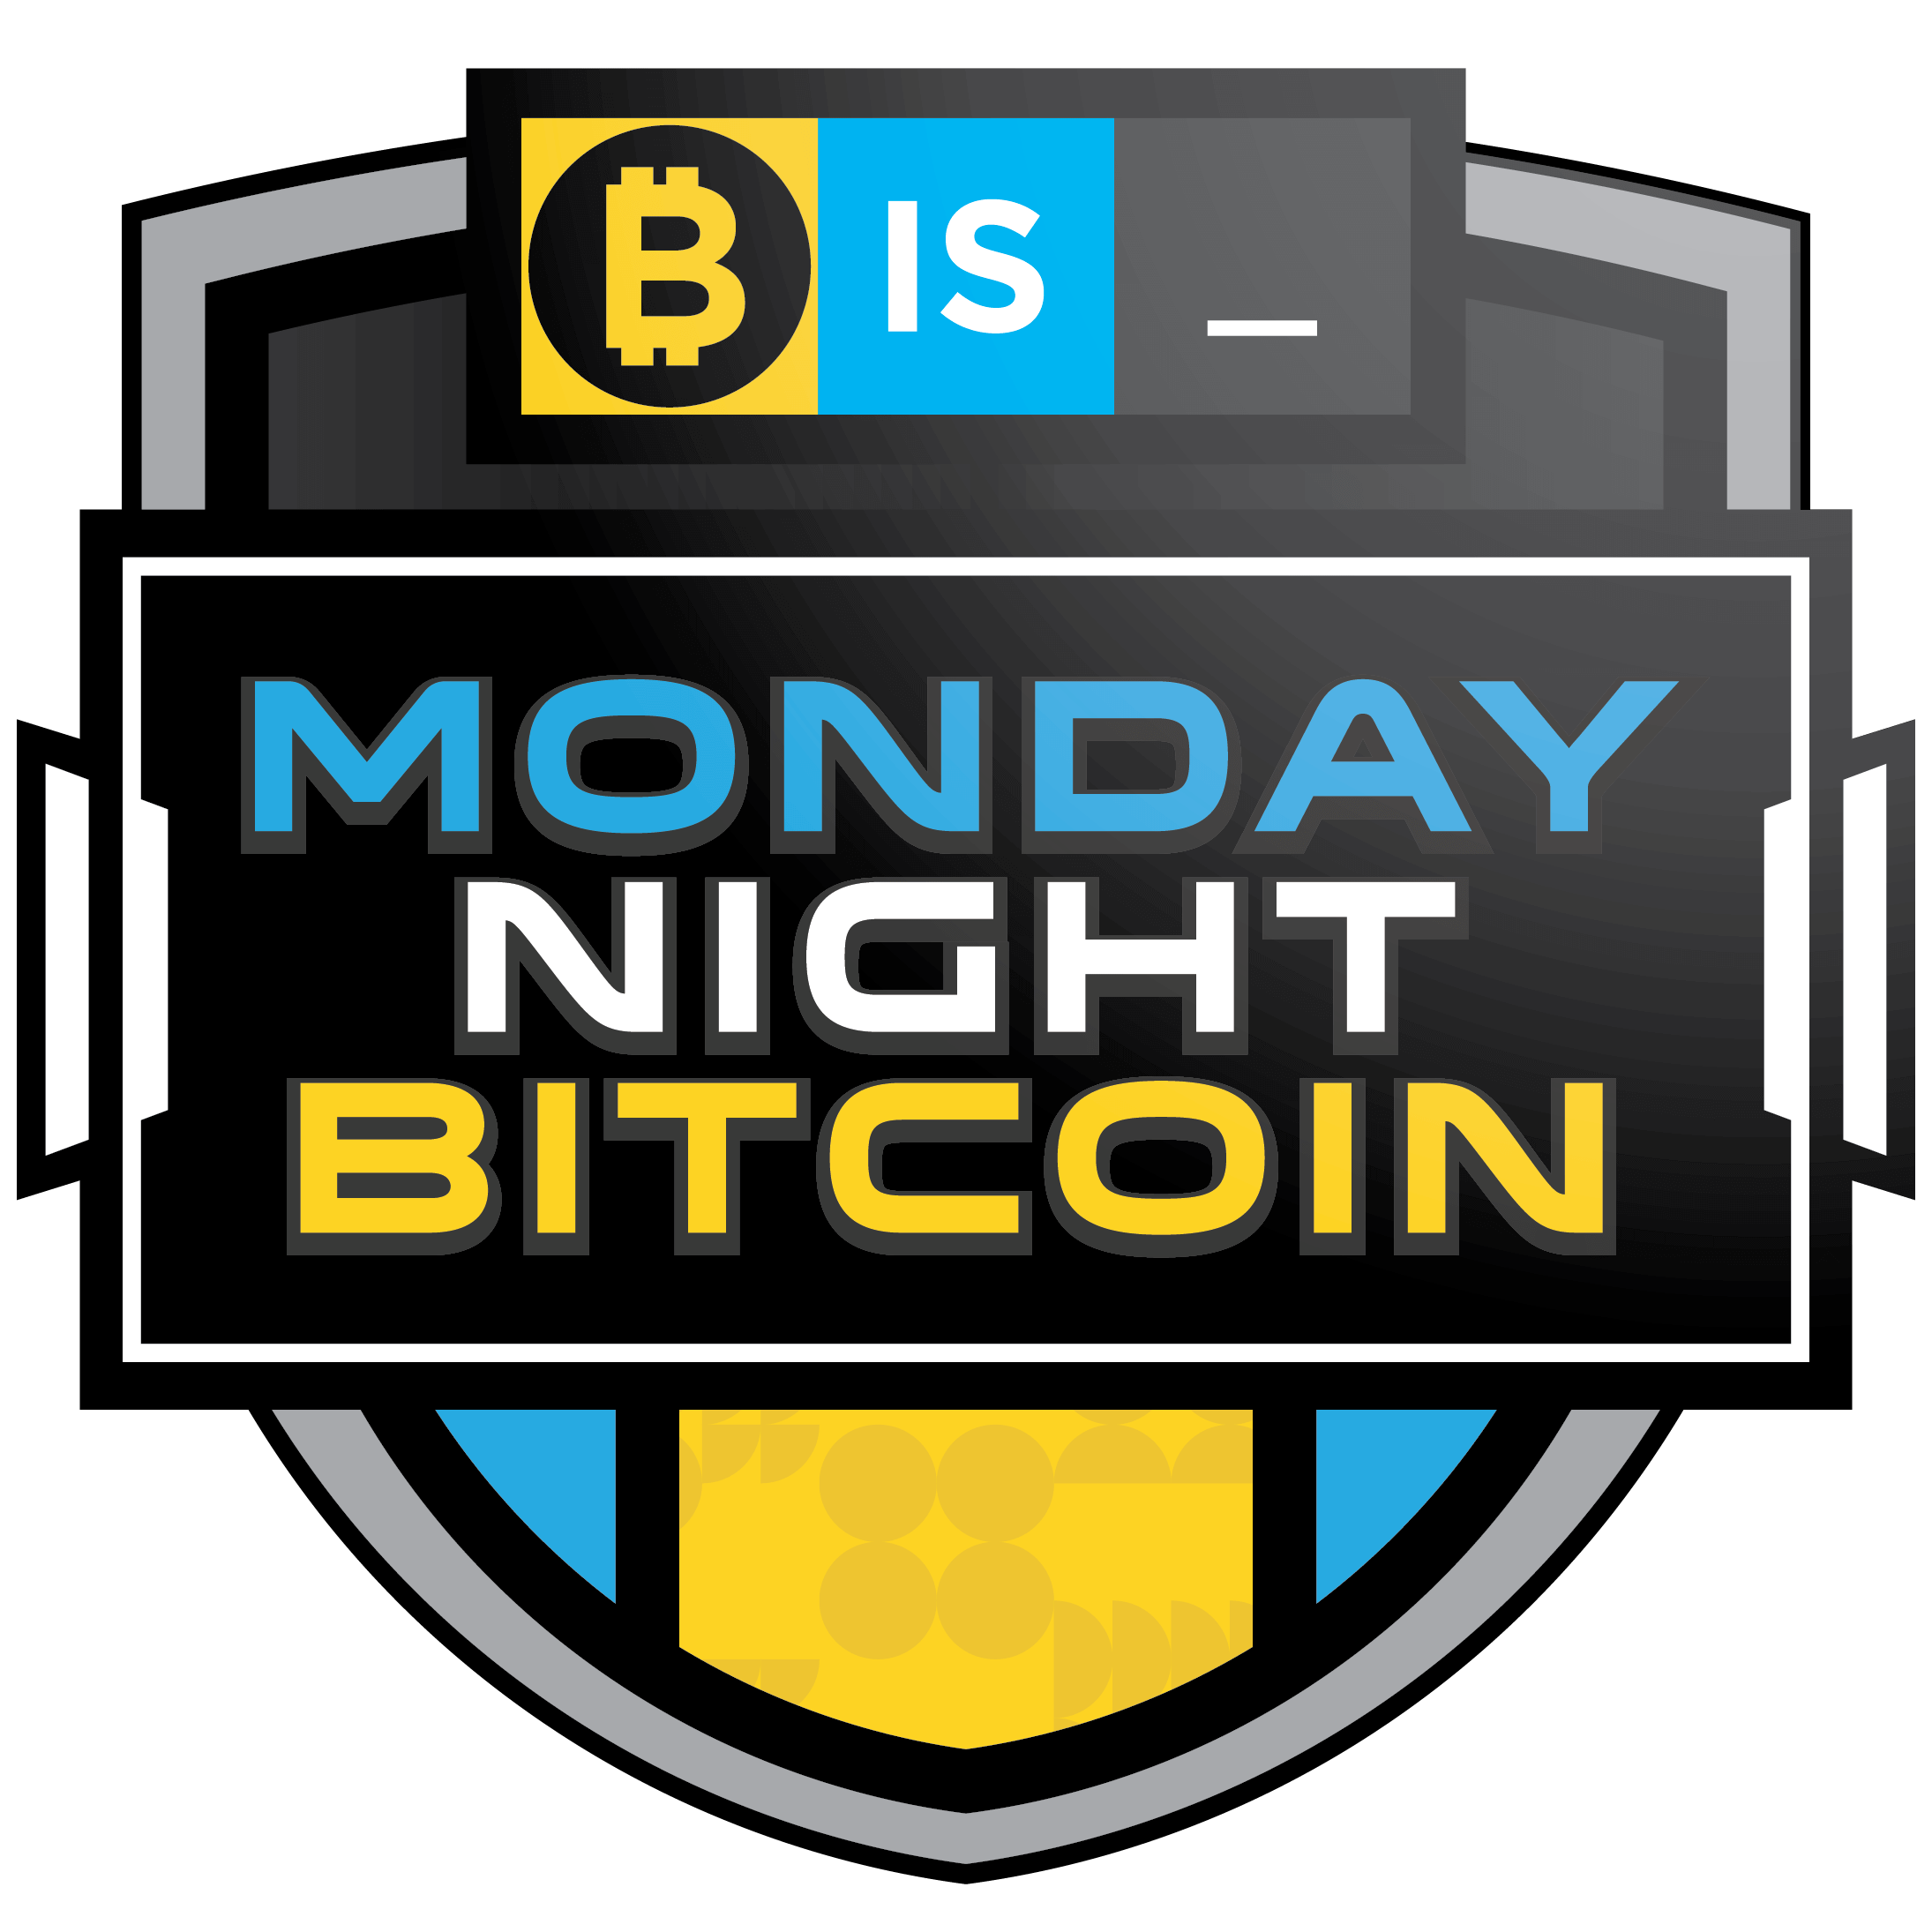 Monday Night Bitcoin